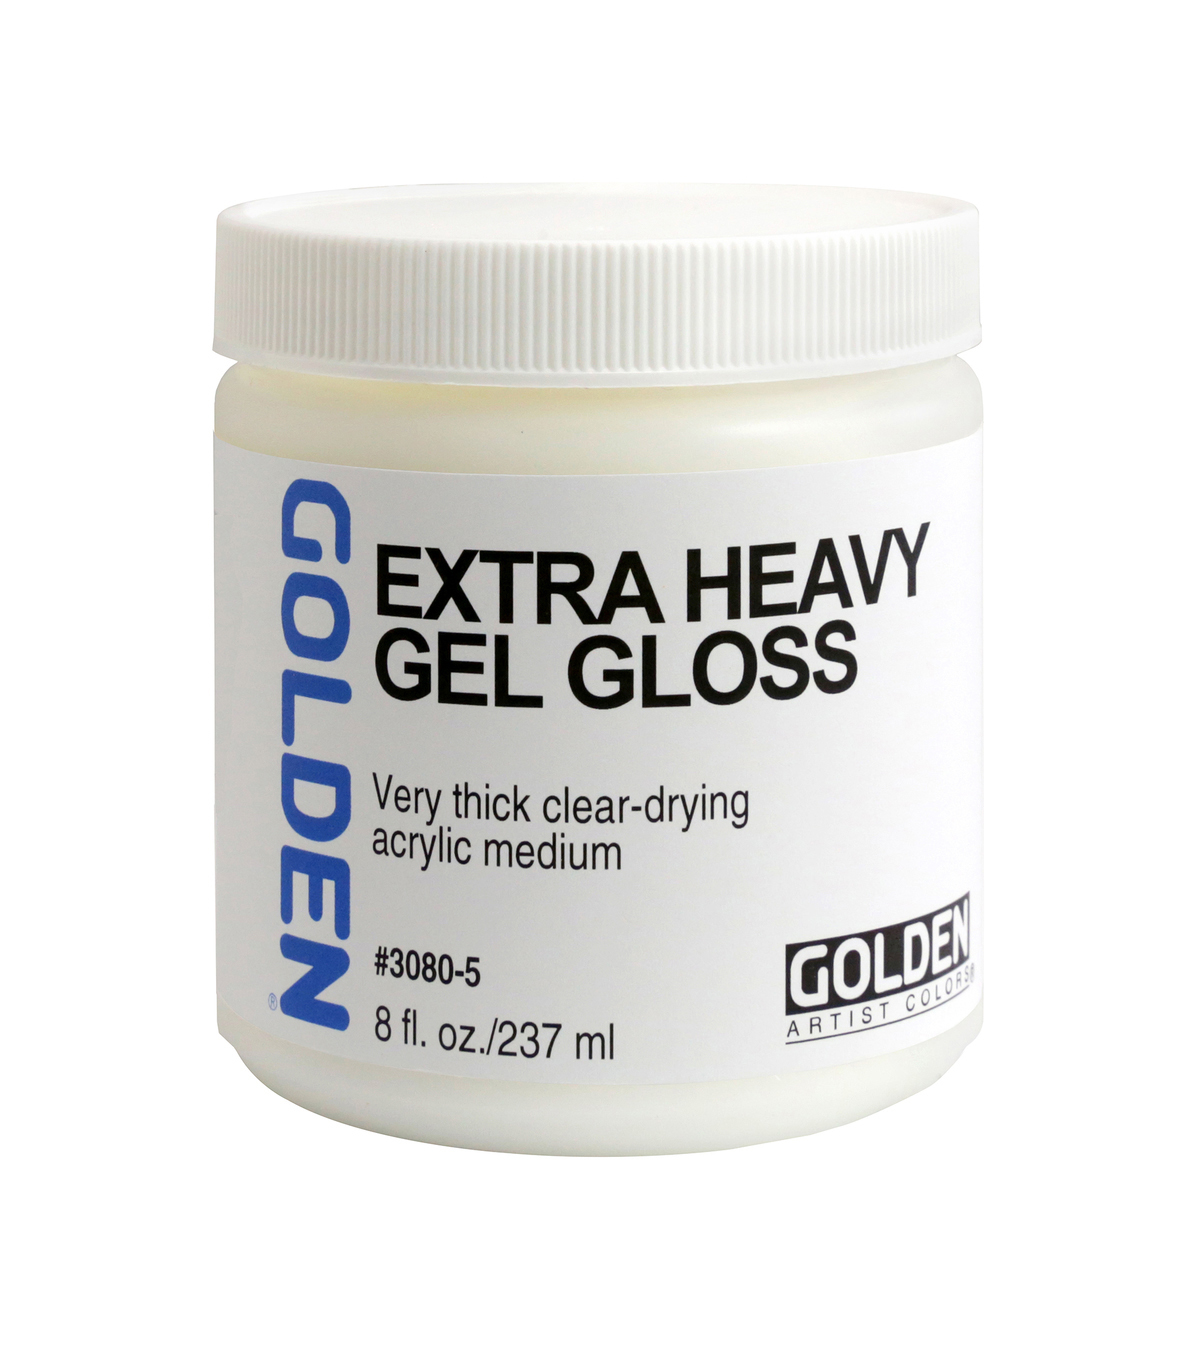 Golden Extra Geavy Gel Gloss 8oz.